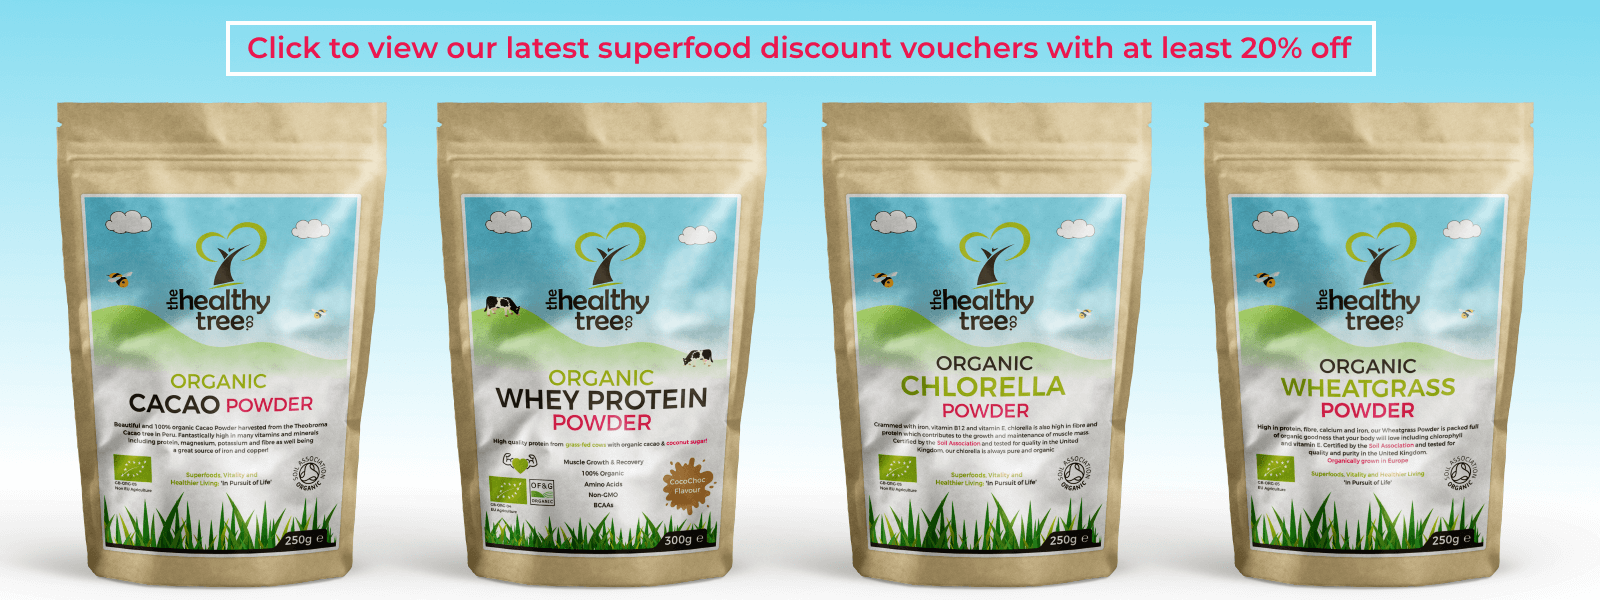 Superfood Discount Offers